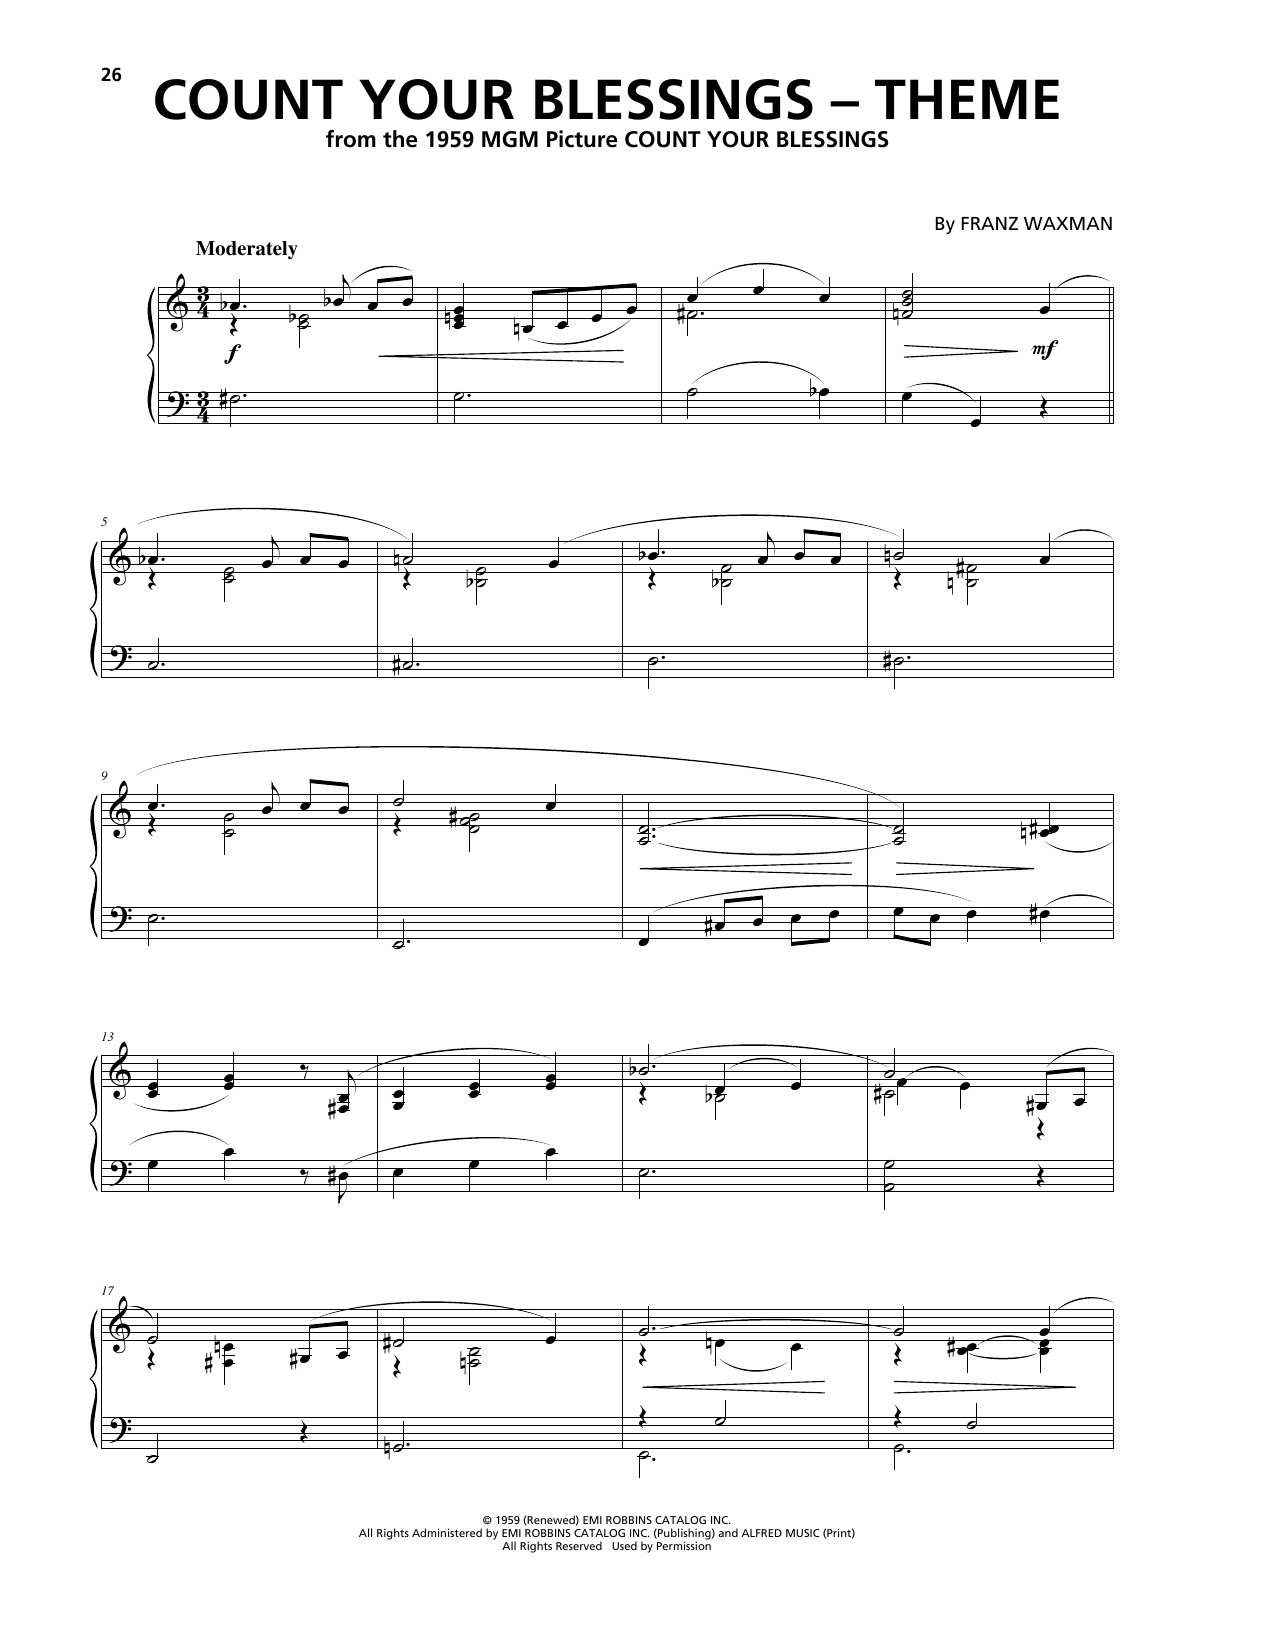 Download Franz Waxman 'Count Your Blessings (Theme)' Digital Sheet Music Notes & Chords and start playing in minutes